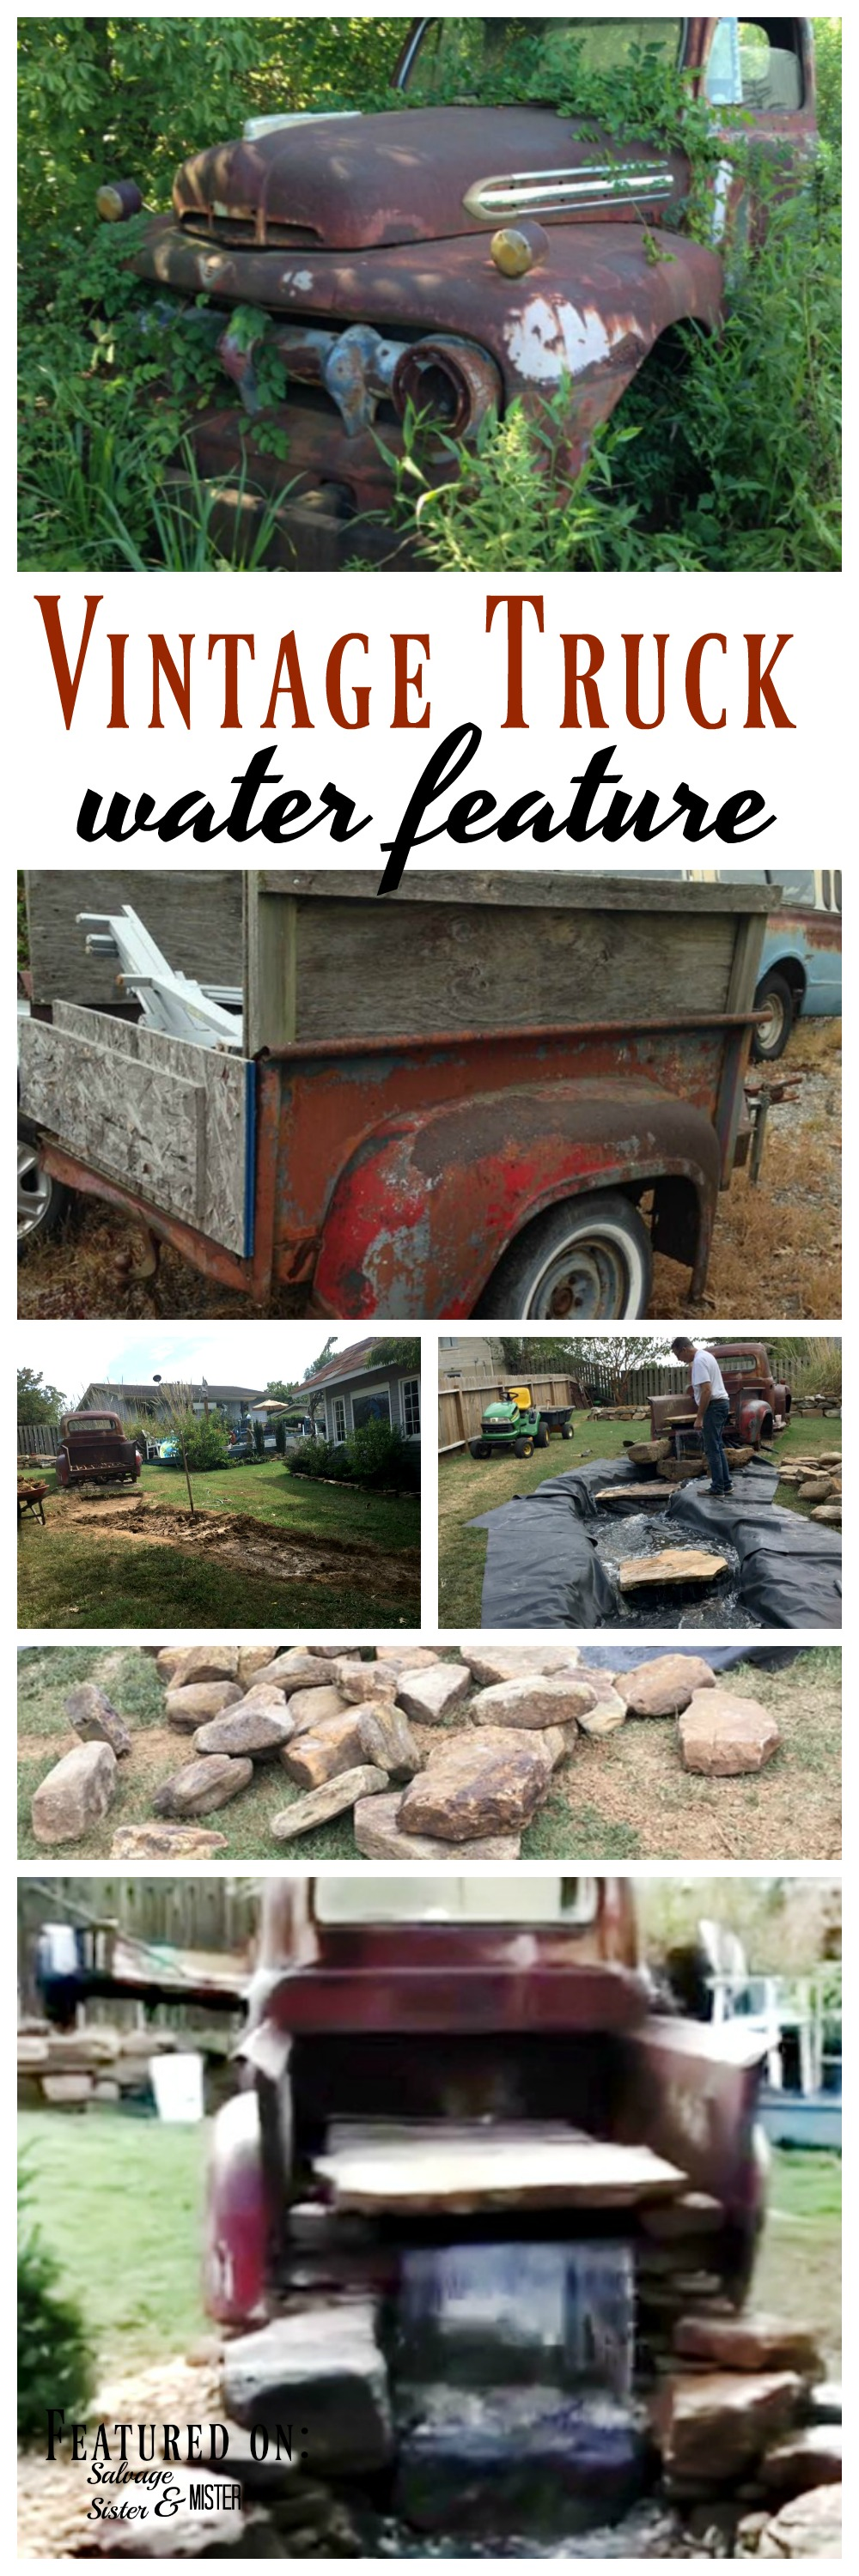 A vintage truck water feature for the backyard. Come tour this DIY backyard oasis complete with a cottage made from almost all repurposed materials. Fun and unique upcycle projects. #upccyle #backyard